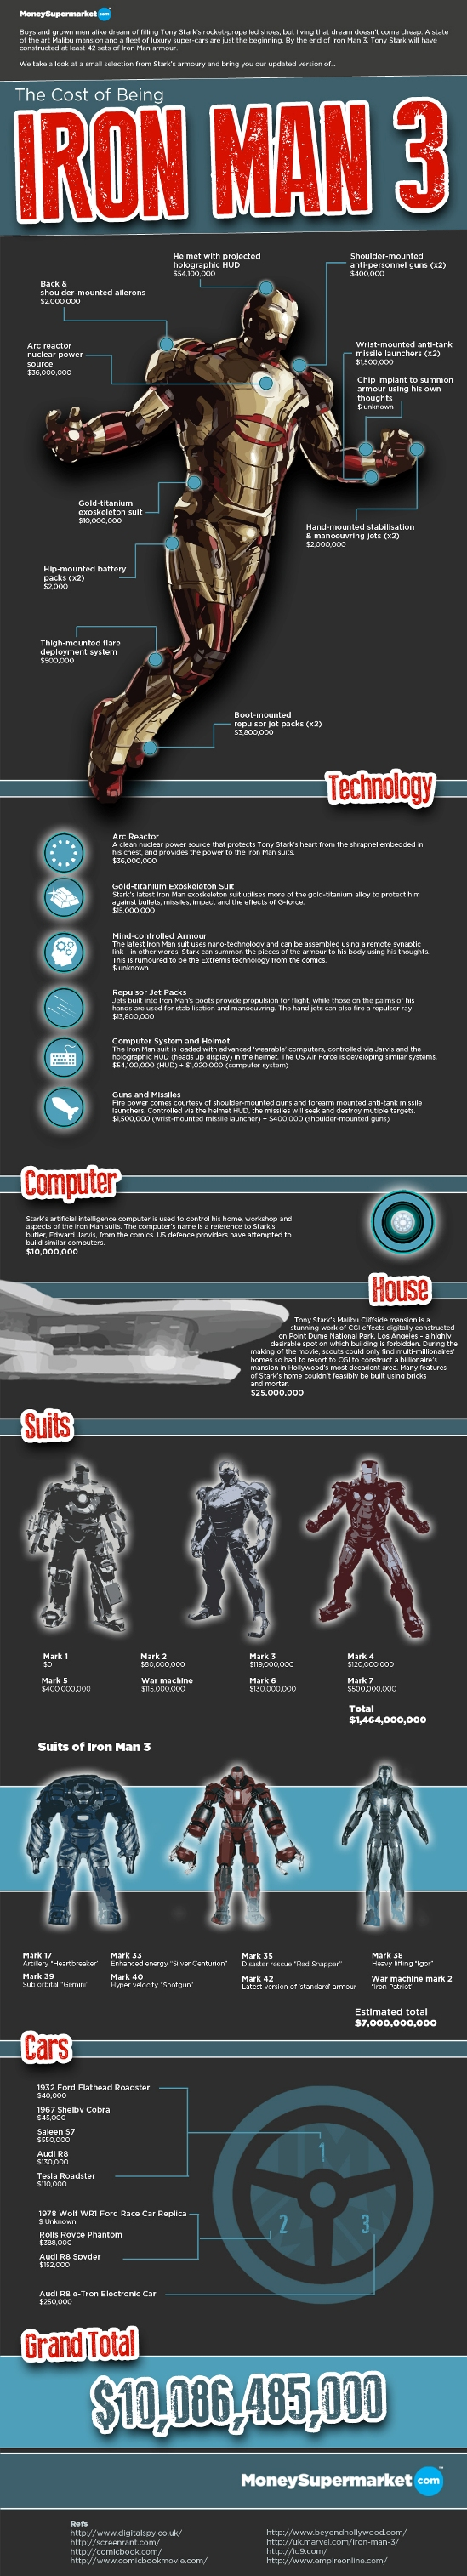 how-much-would-it-cost-to-be-Iron-Man